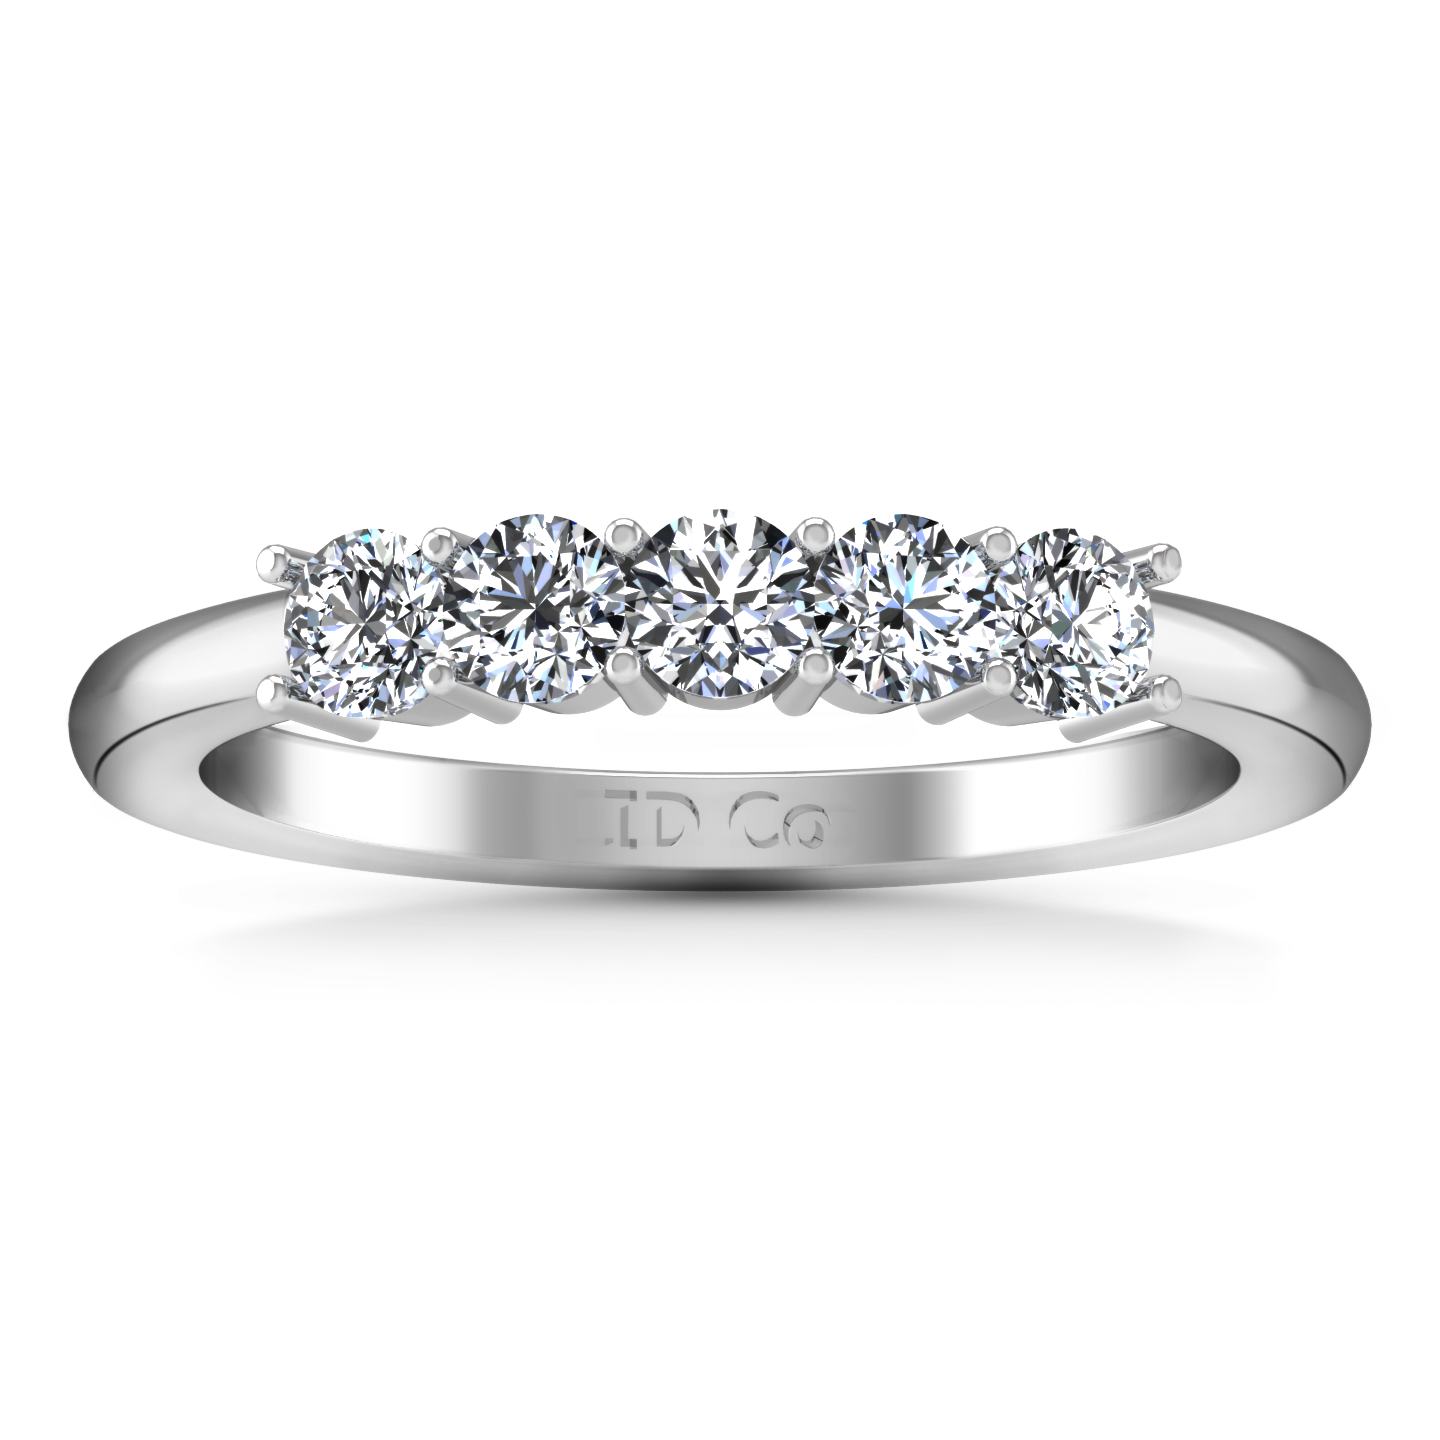 rings aberdeen fancy stone diamonds you allcategories diamond f centre allprices brilliant three engagement a ring can